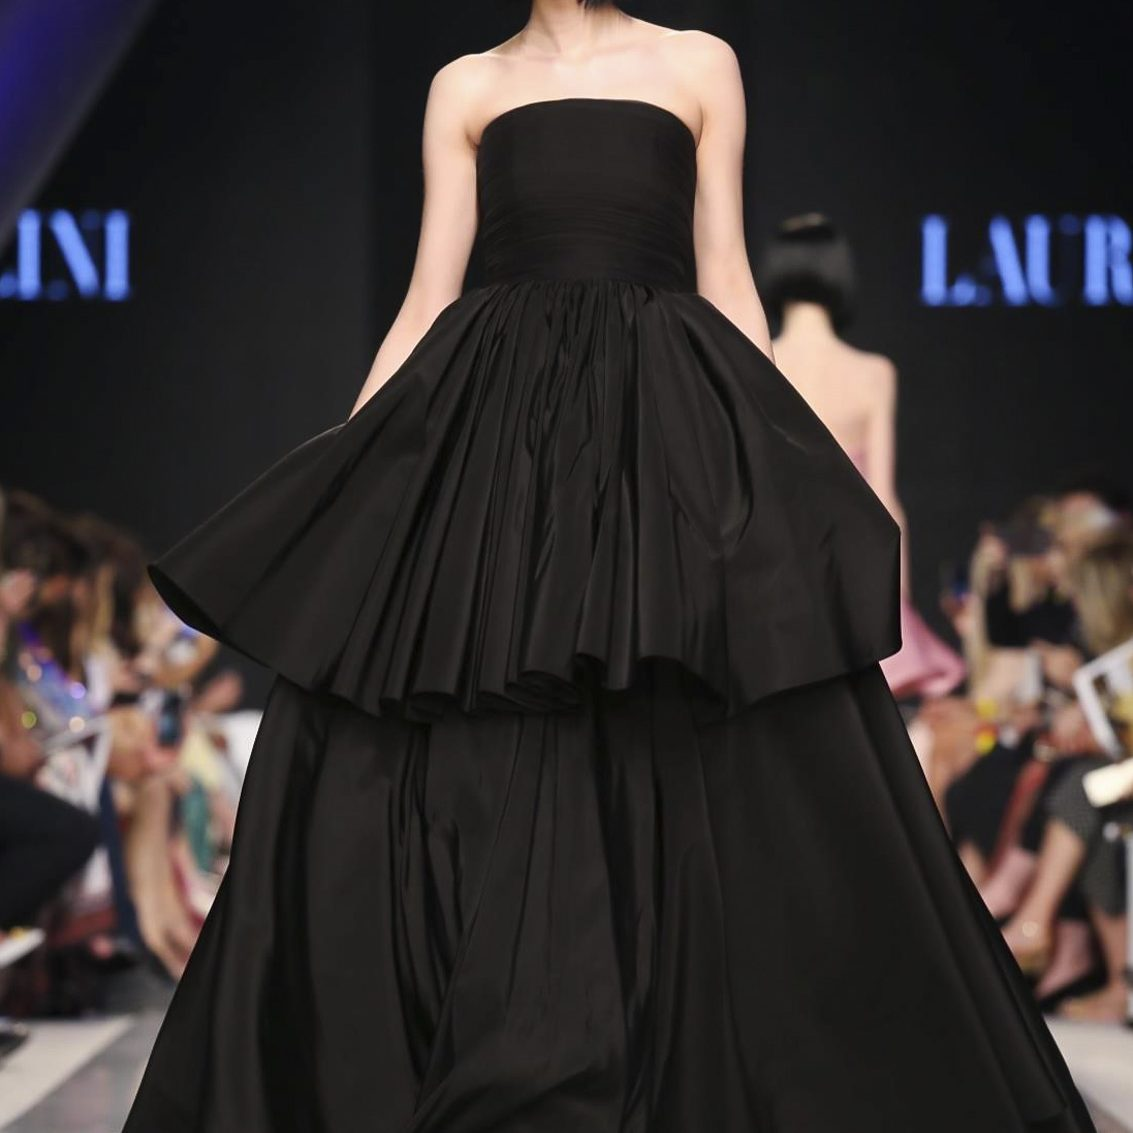 Laura Mancini Resort 2018 Collection, Arab Fashion Week, Dubai